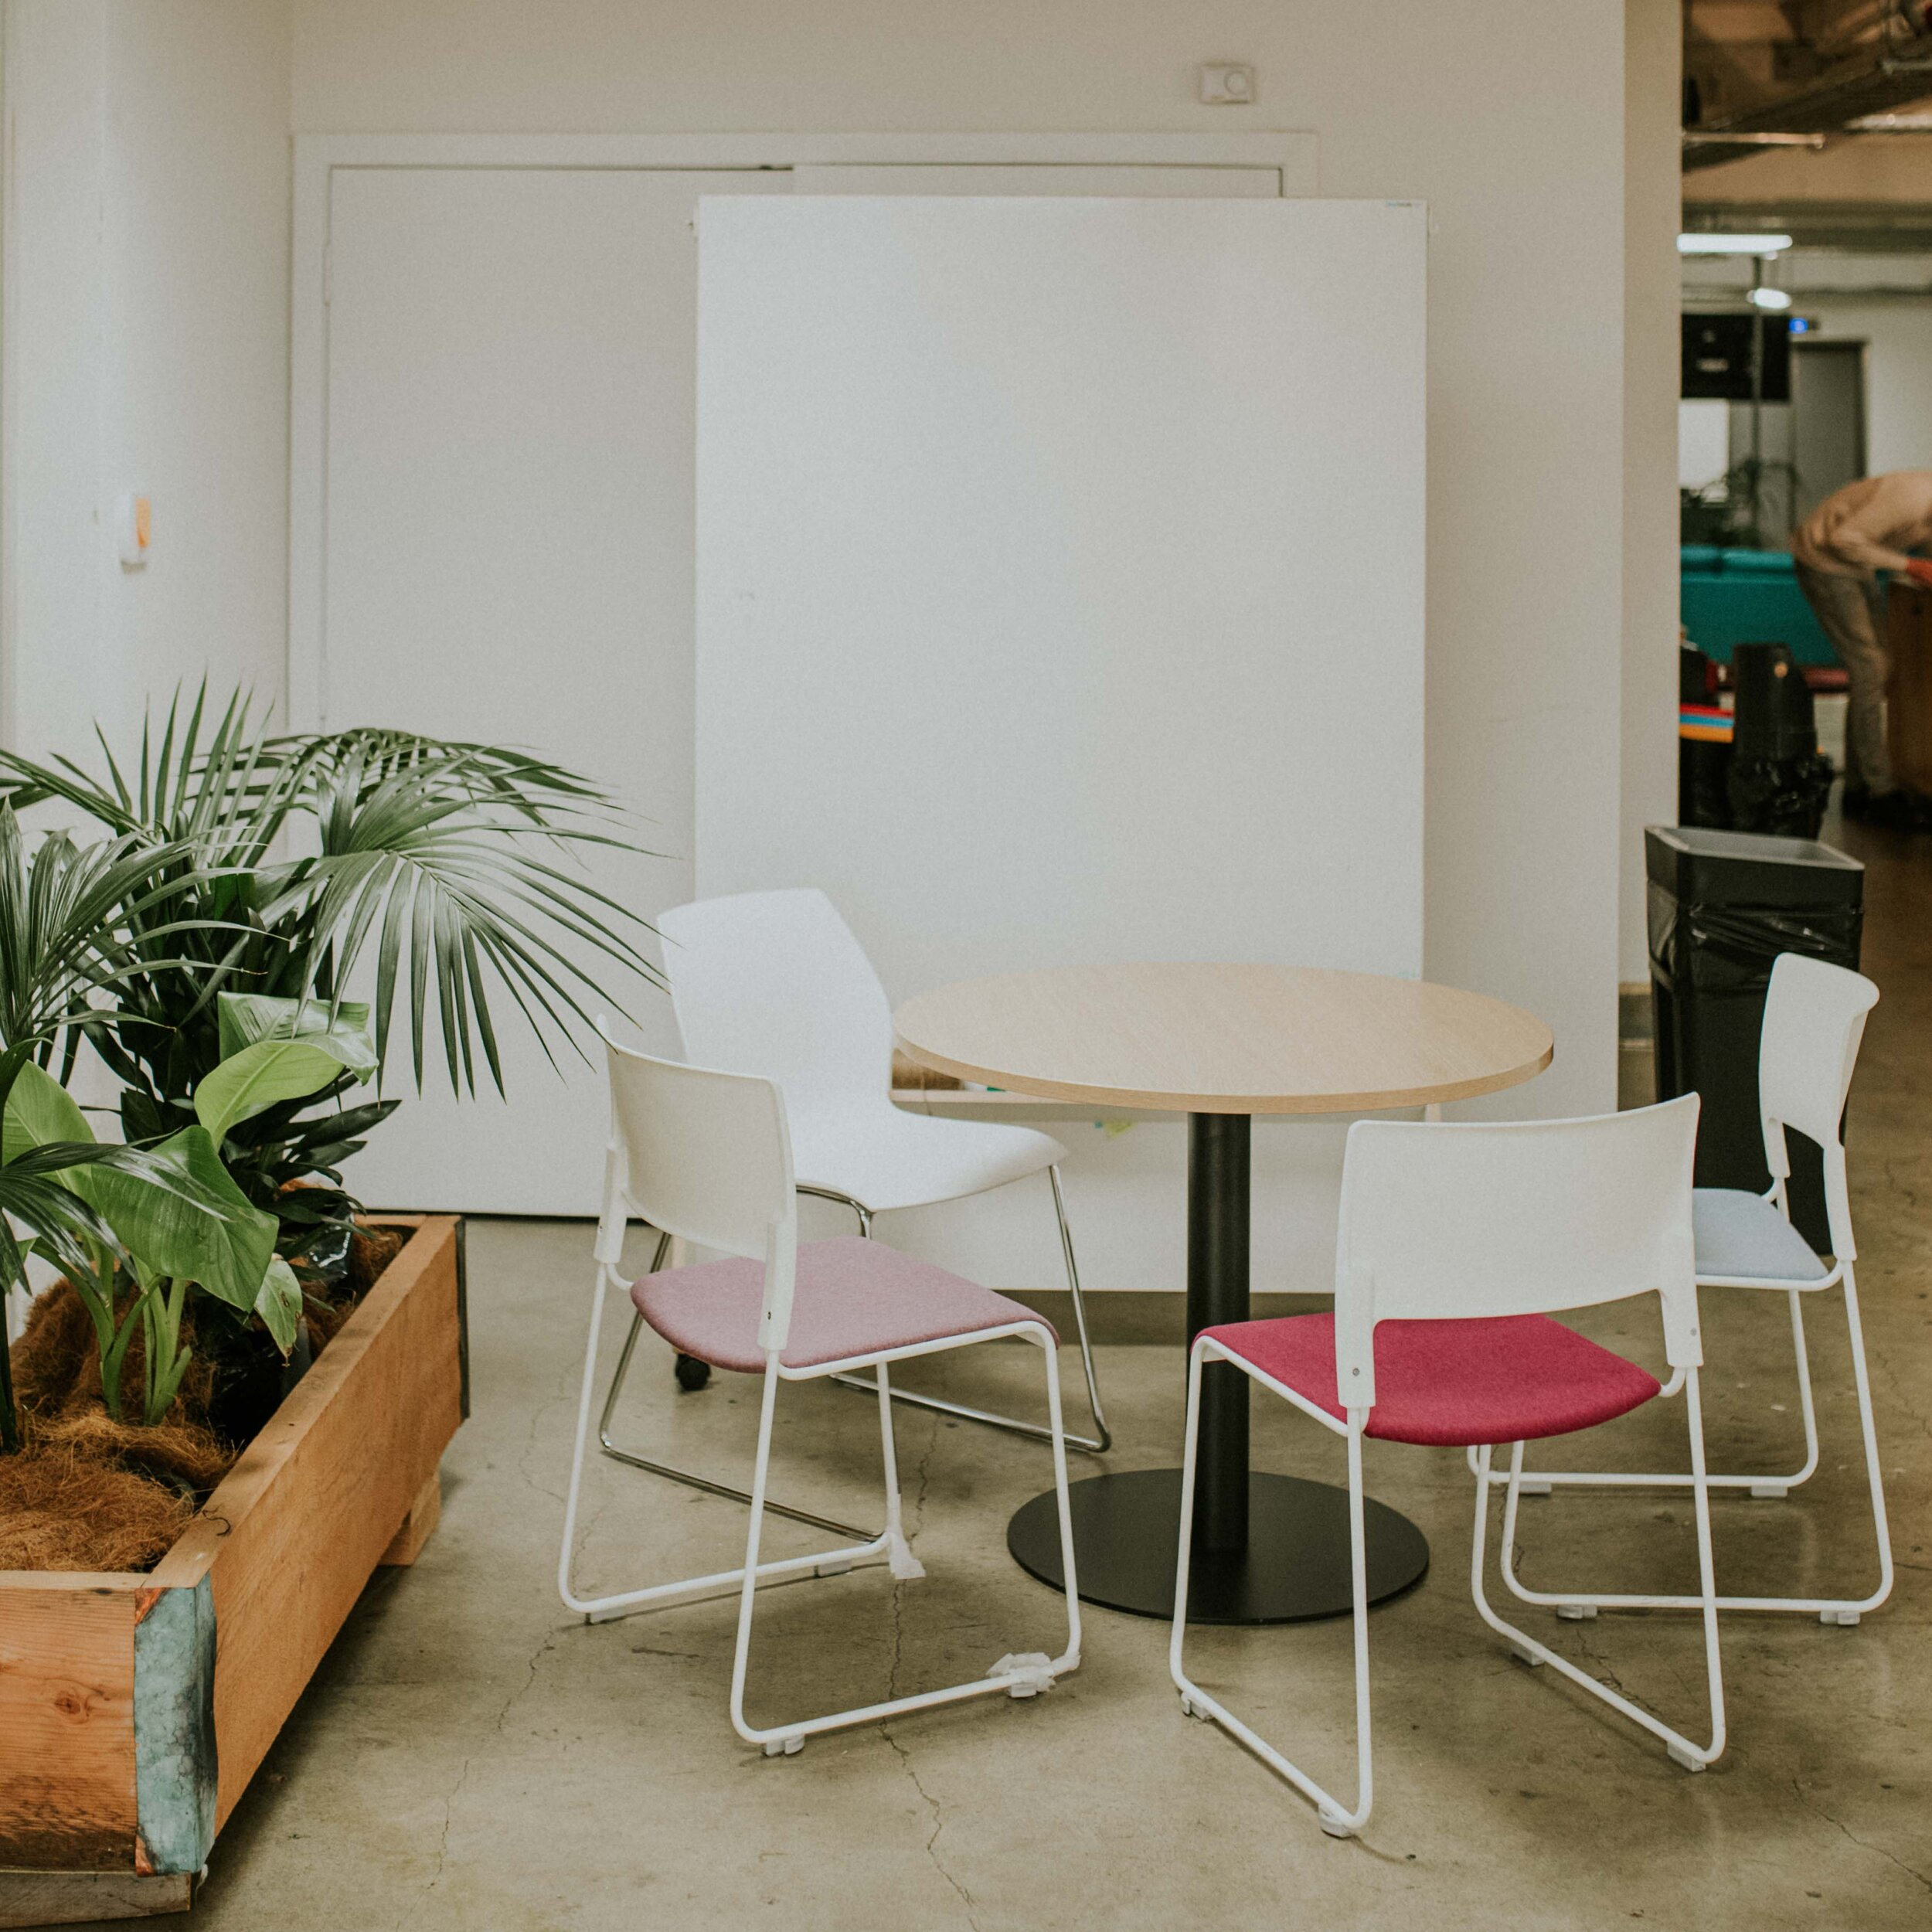 Small Meeting Room | $45/hour - The small meeting room has capacity for up to seven people. Equipped with a whiteboard and screenPrices are GST inclusive.